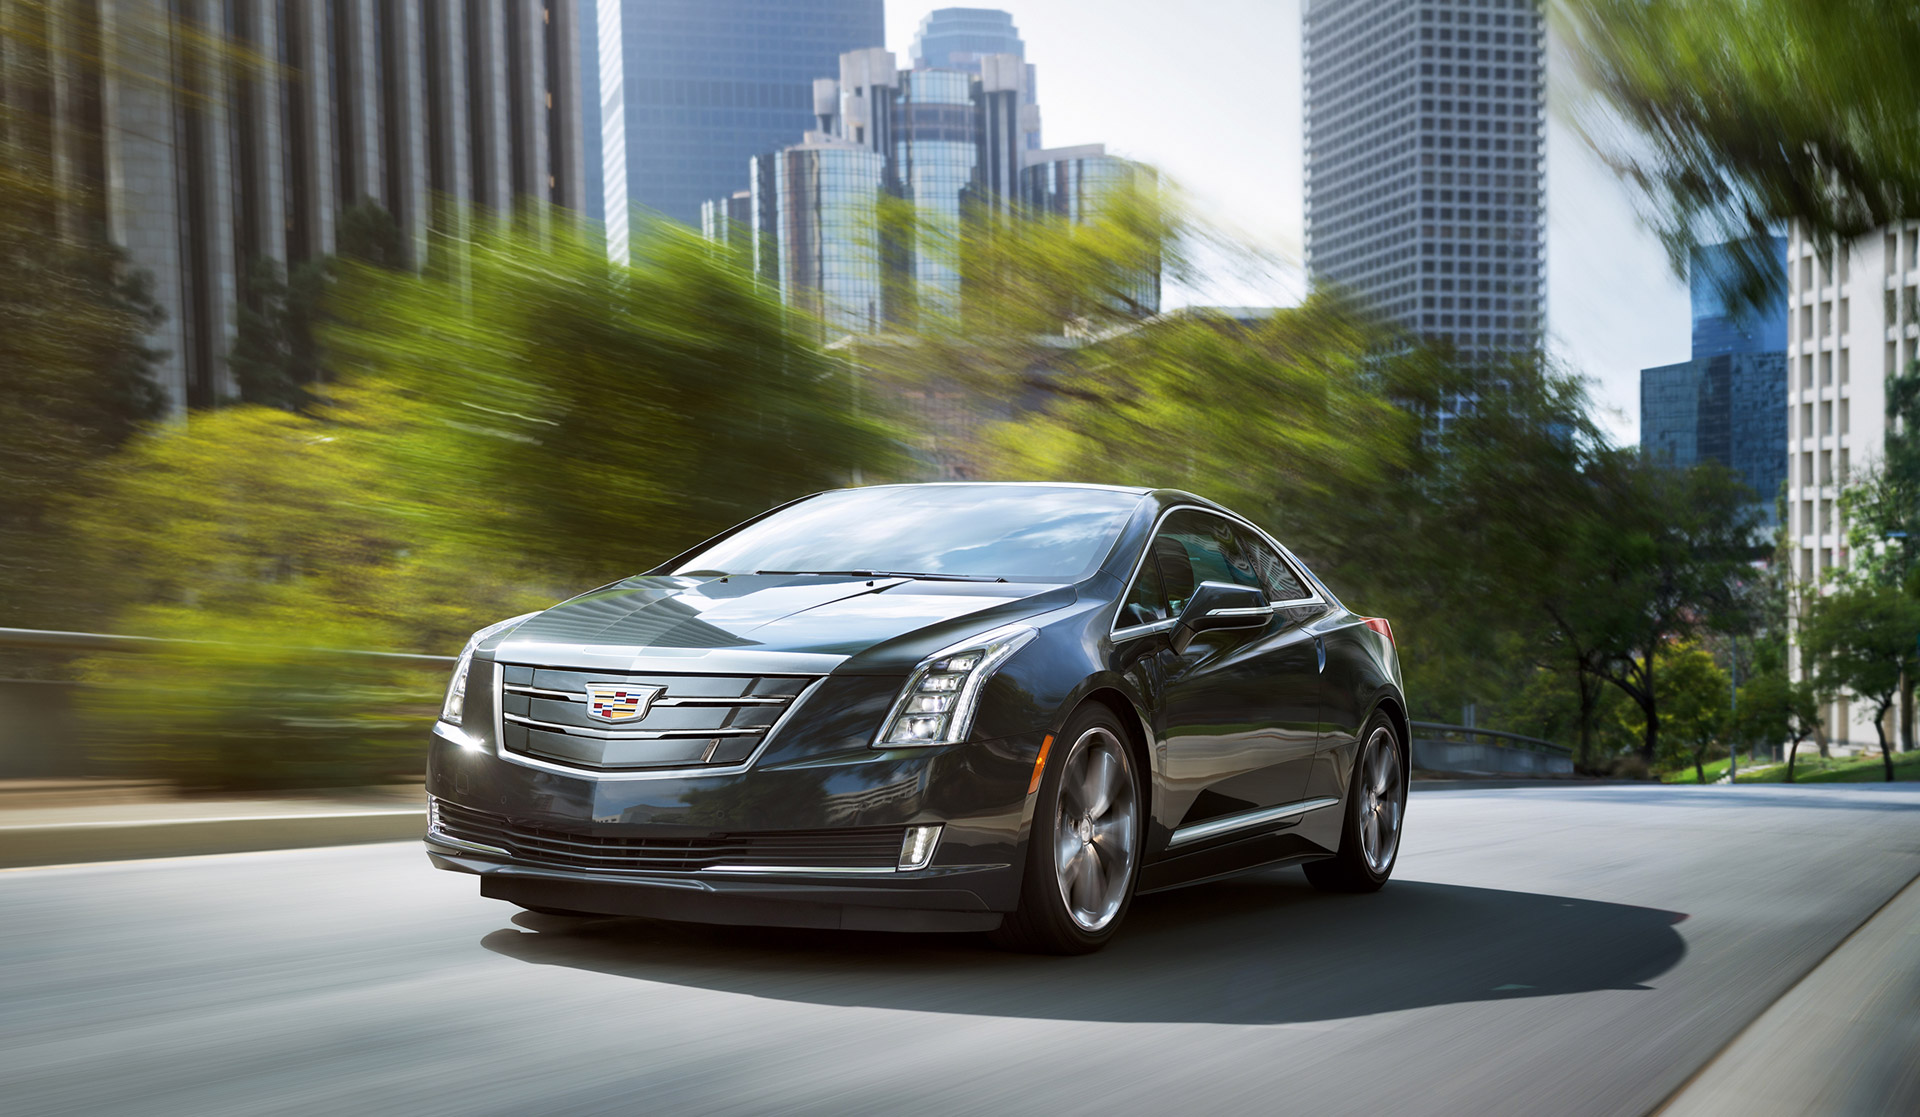 Minivans For Sale >> 2016 Cadillac ELR Review, Ratings, Specs, Prices, and Photos - The Car Connection